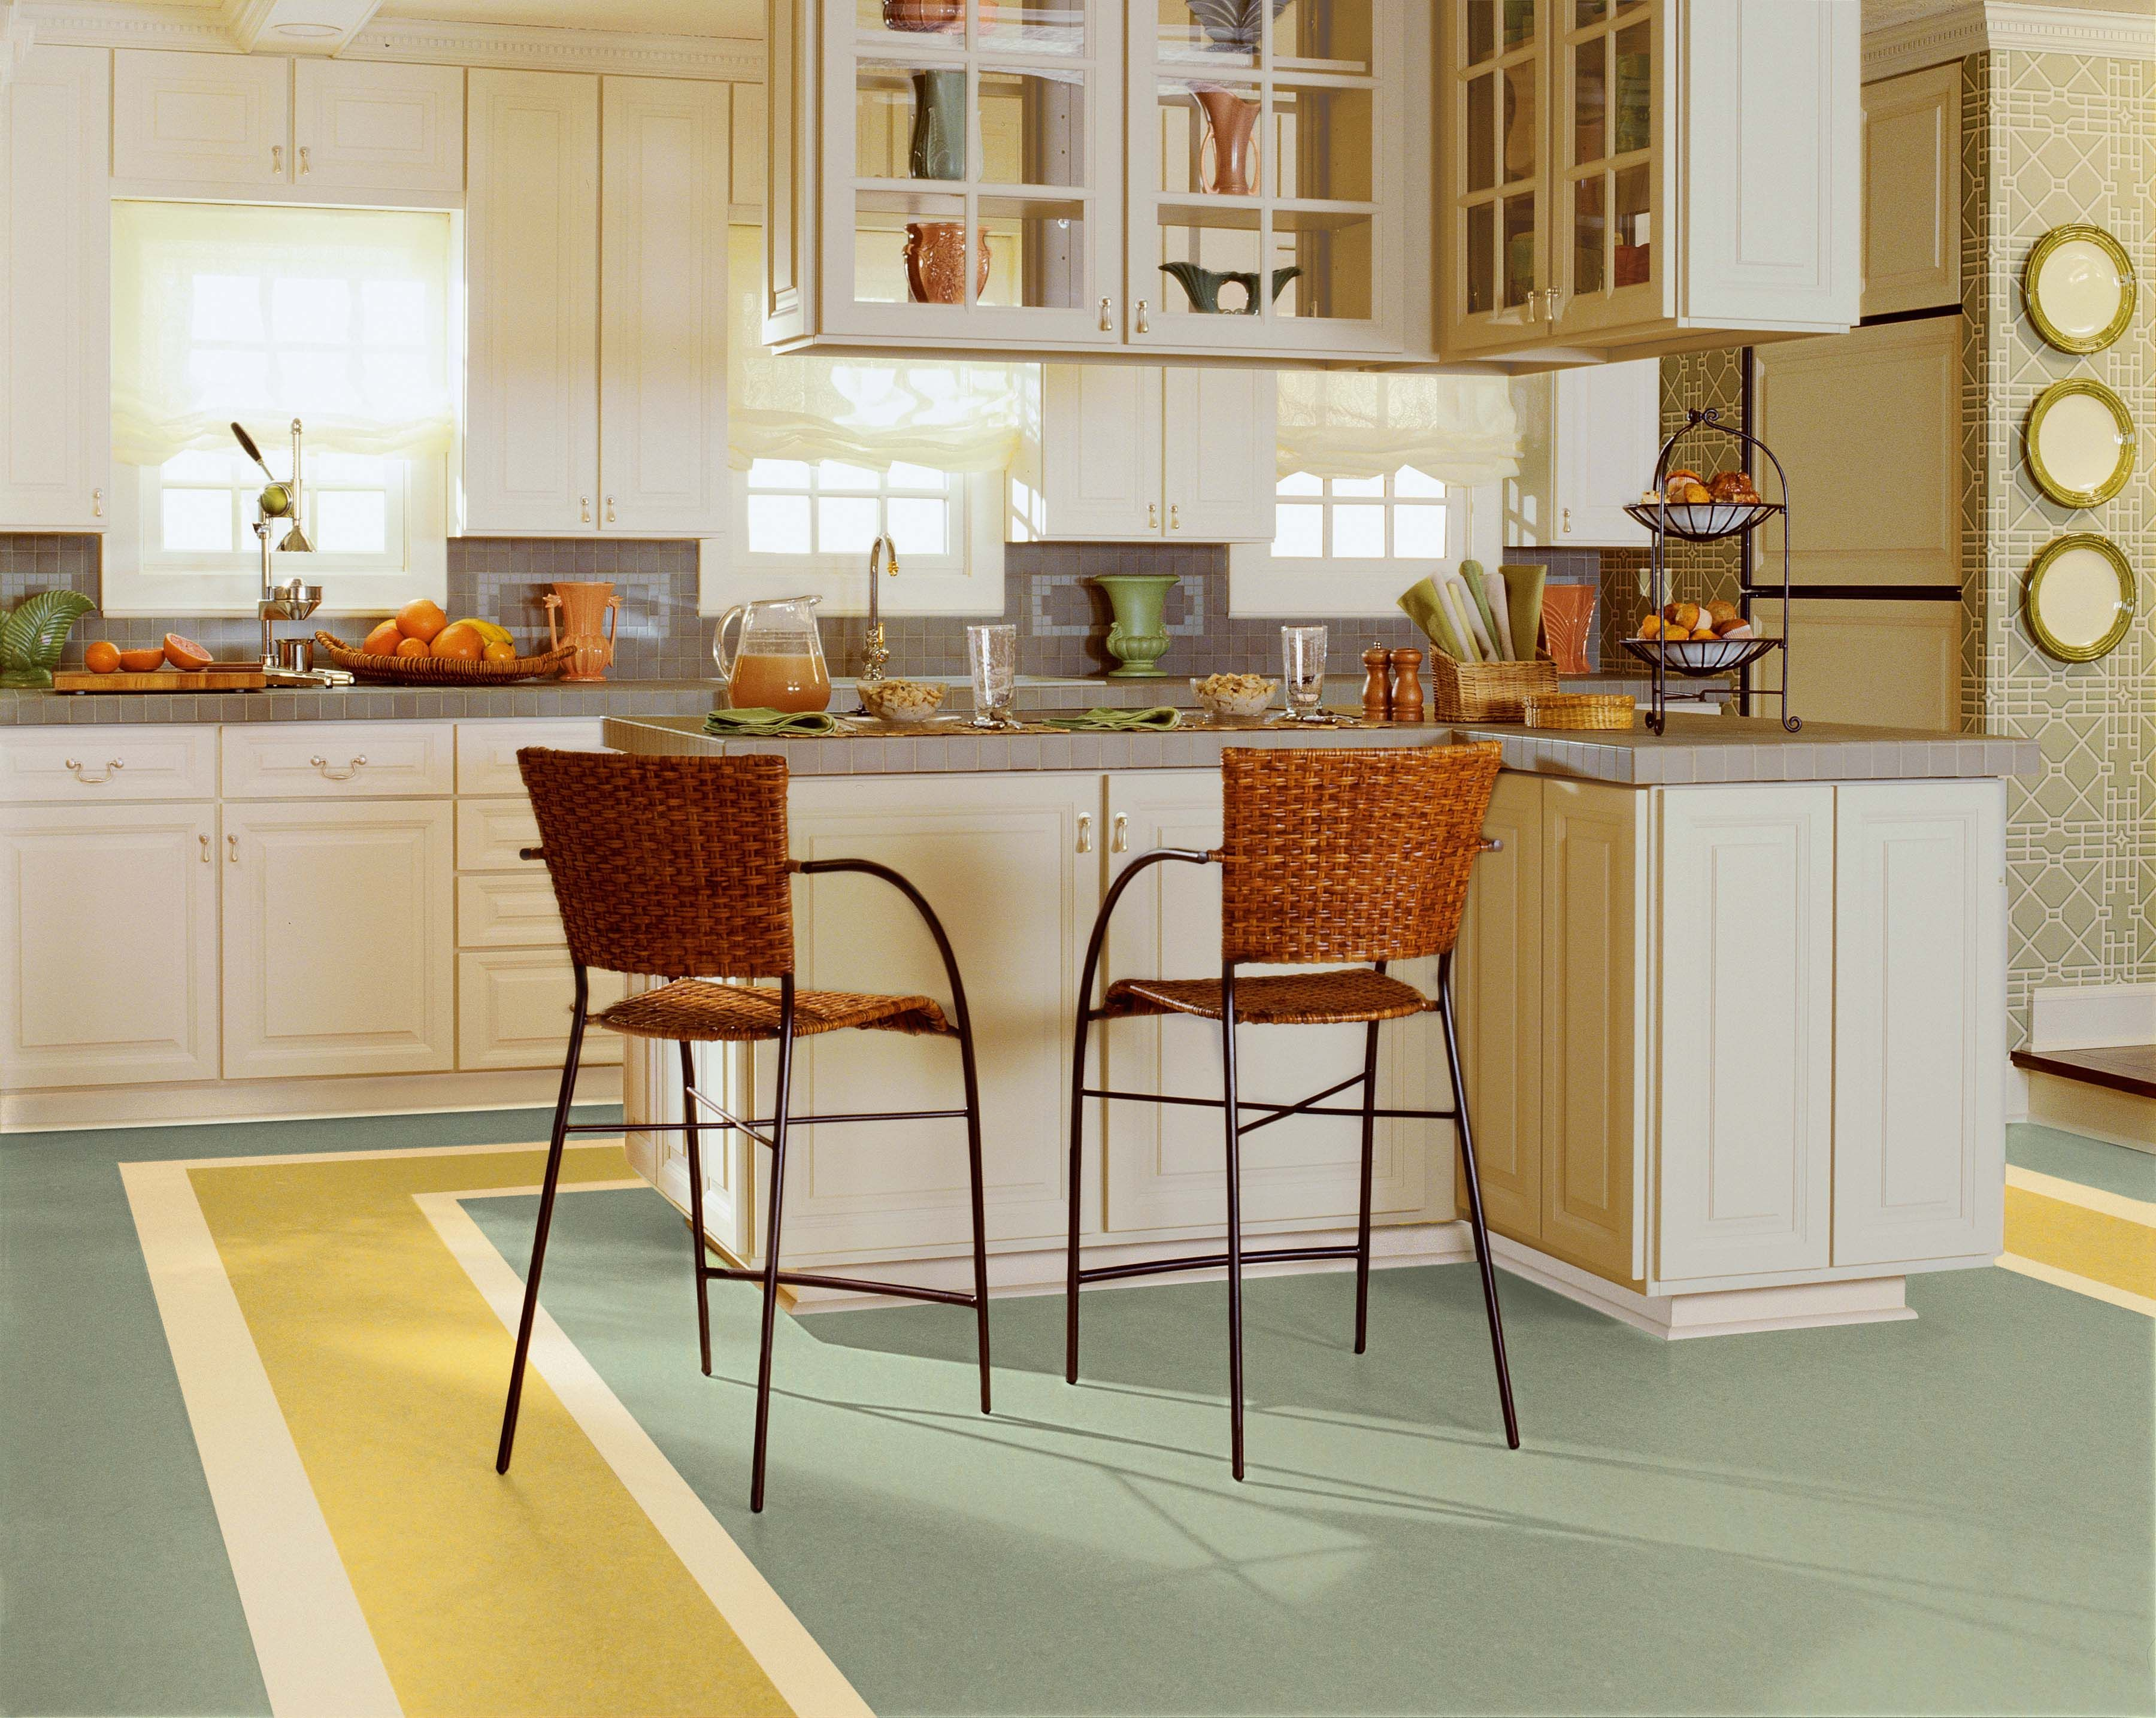 kitchen x of floors dimensions kinds photos types different best for wonderful idea floor flooring intended